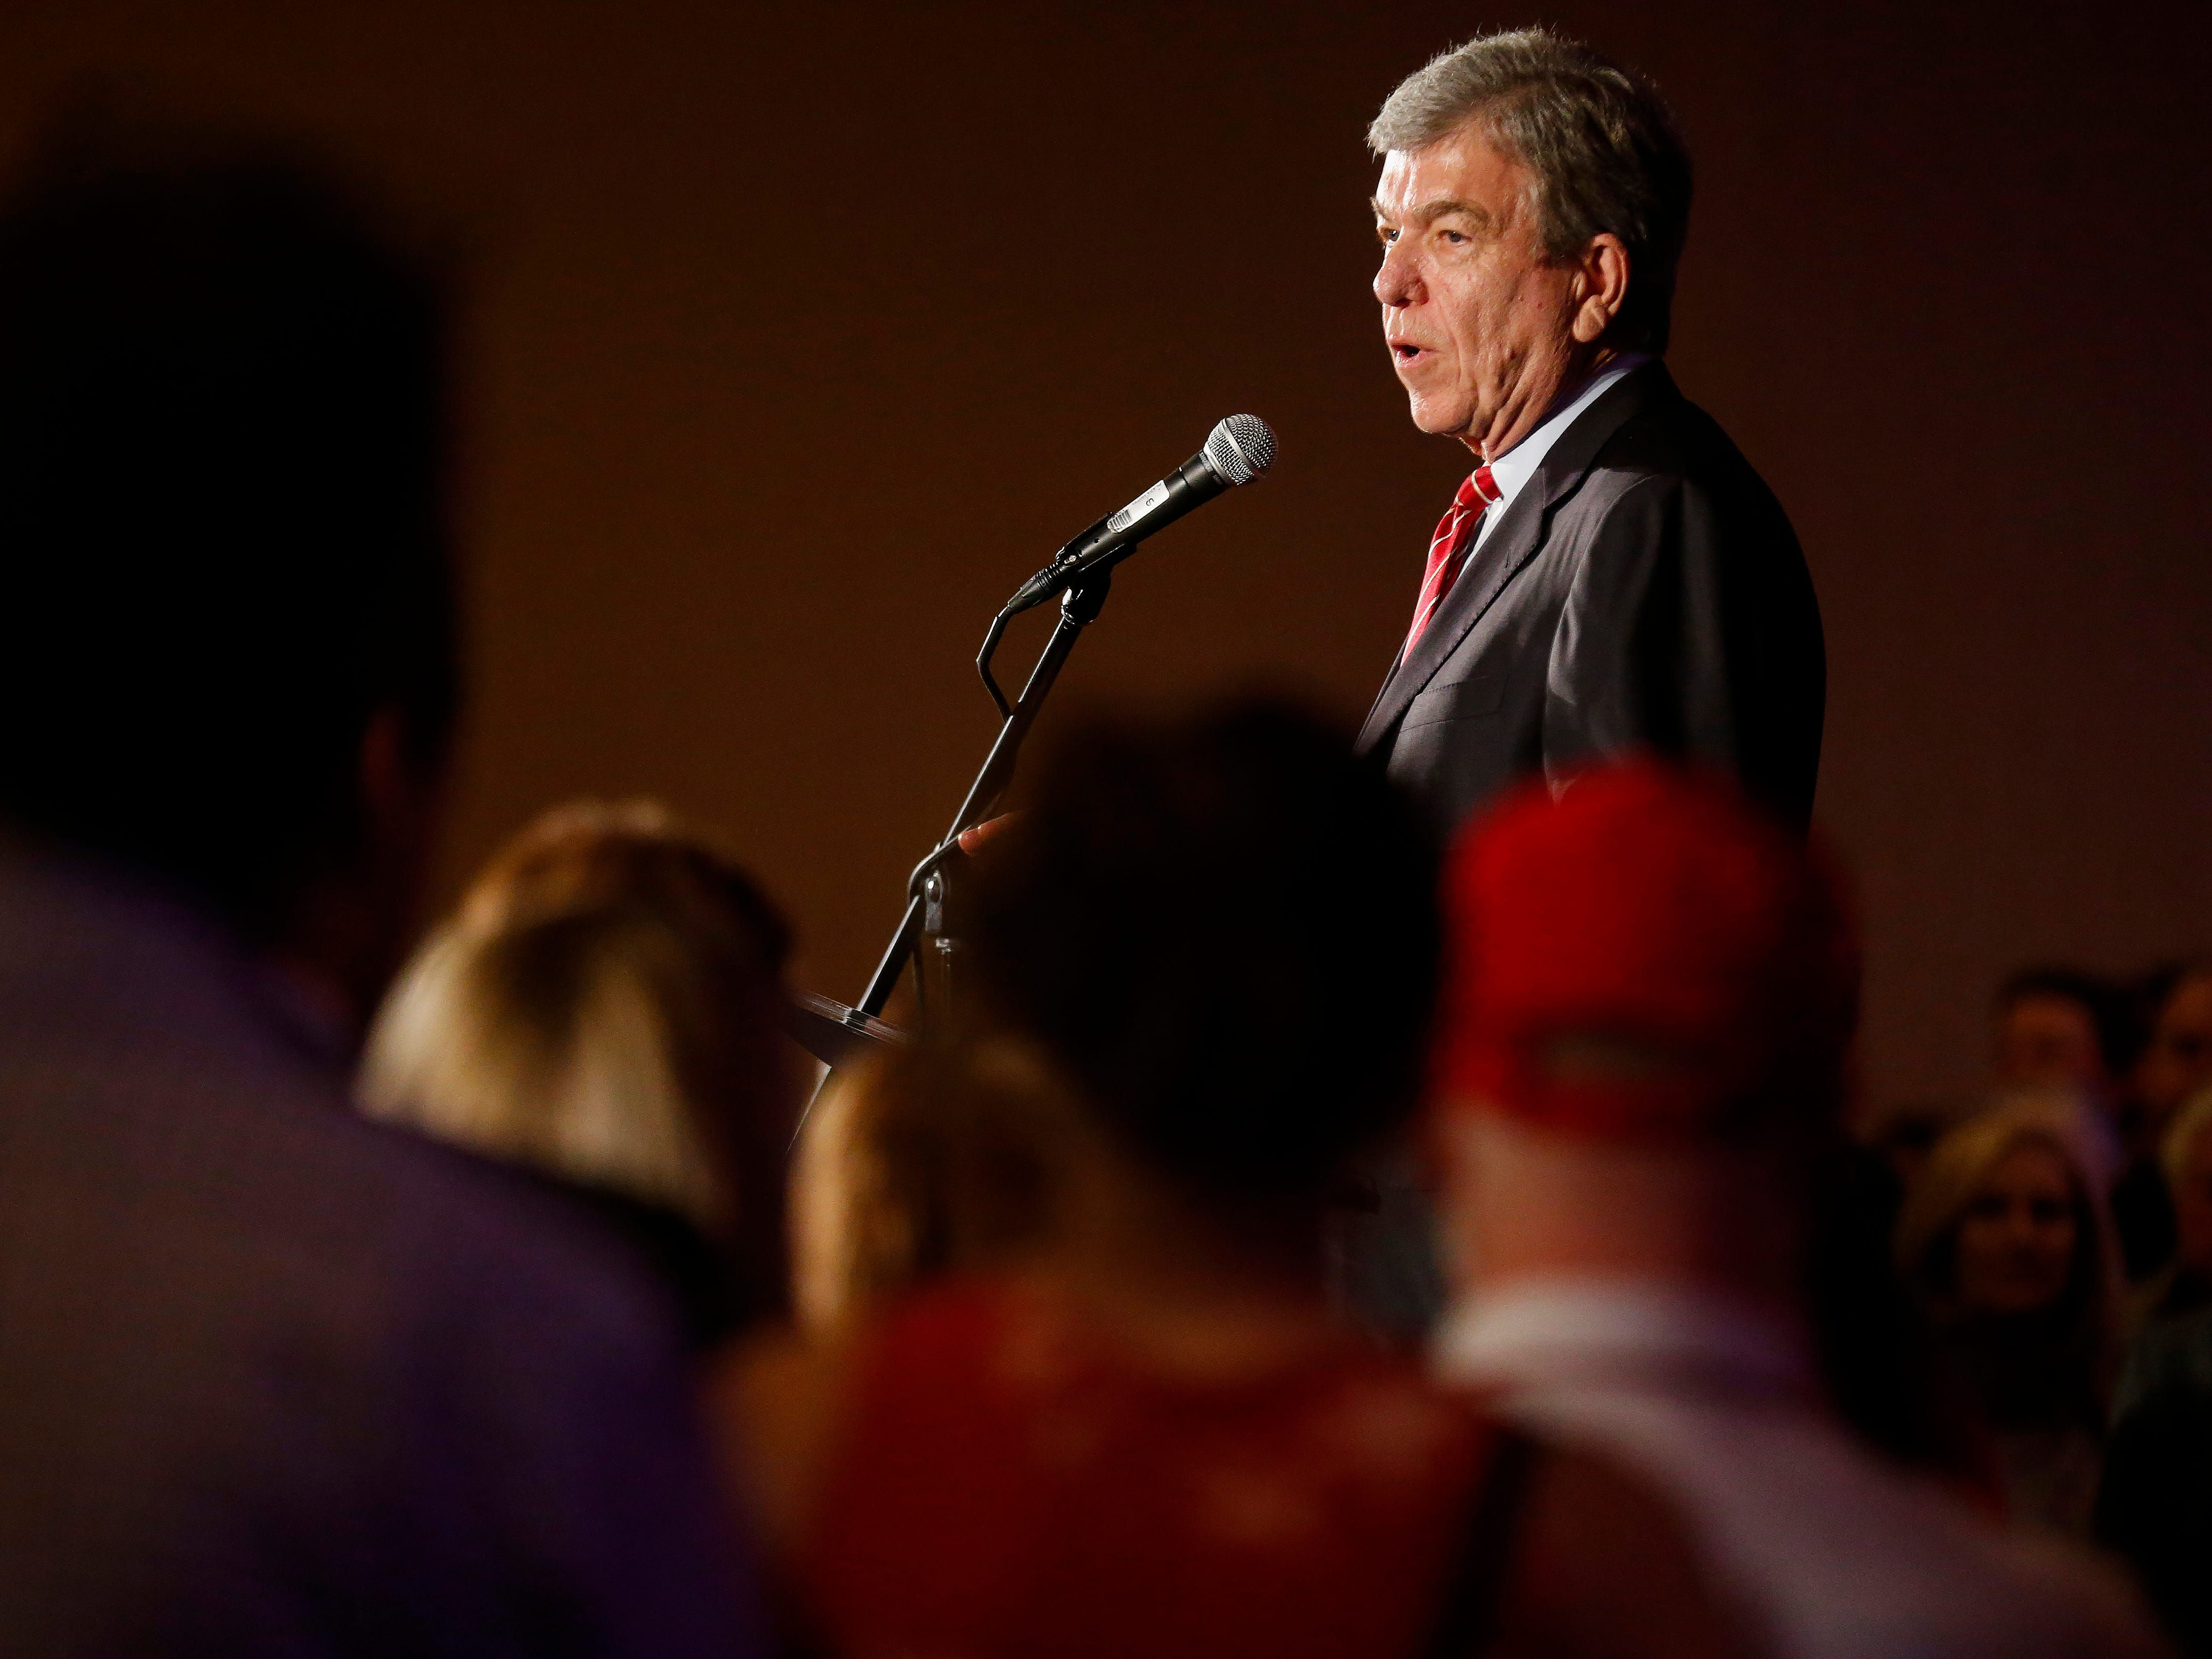 Senator Roy Blunt speaks during the Greene County Republican's watch party at the University Plaza hotel on Tuesday, Nov. 6, 2018.